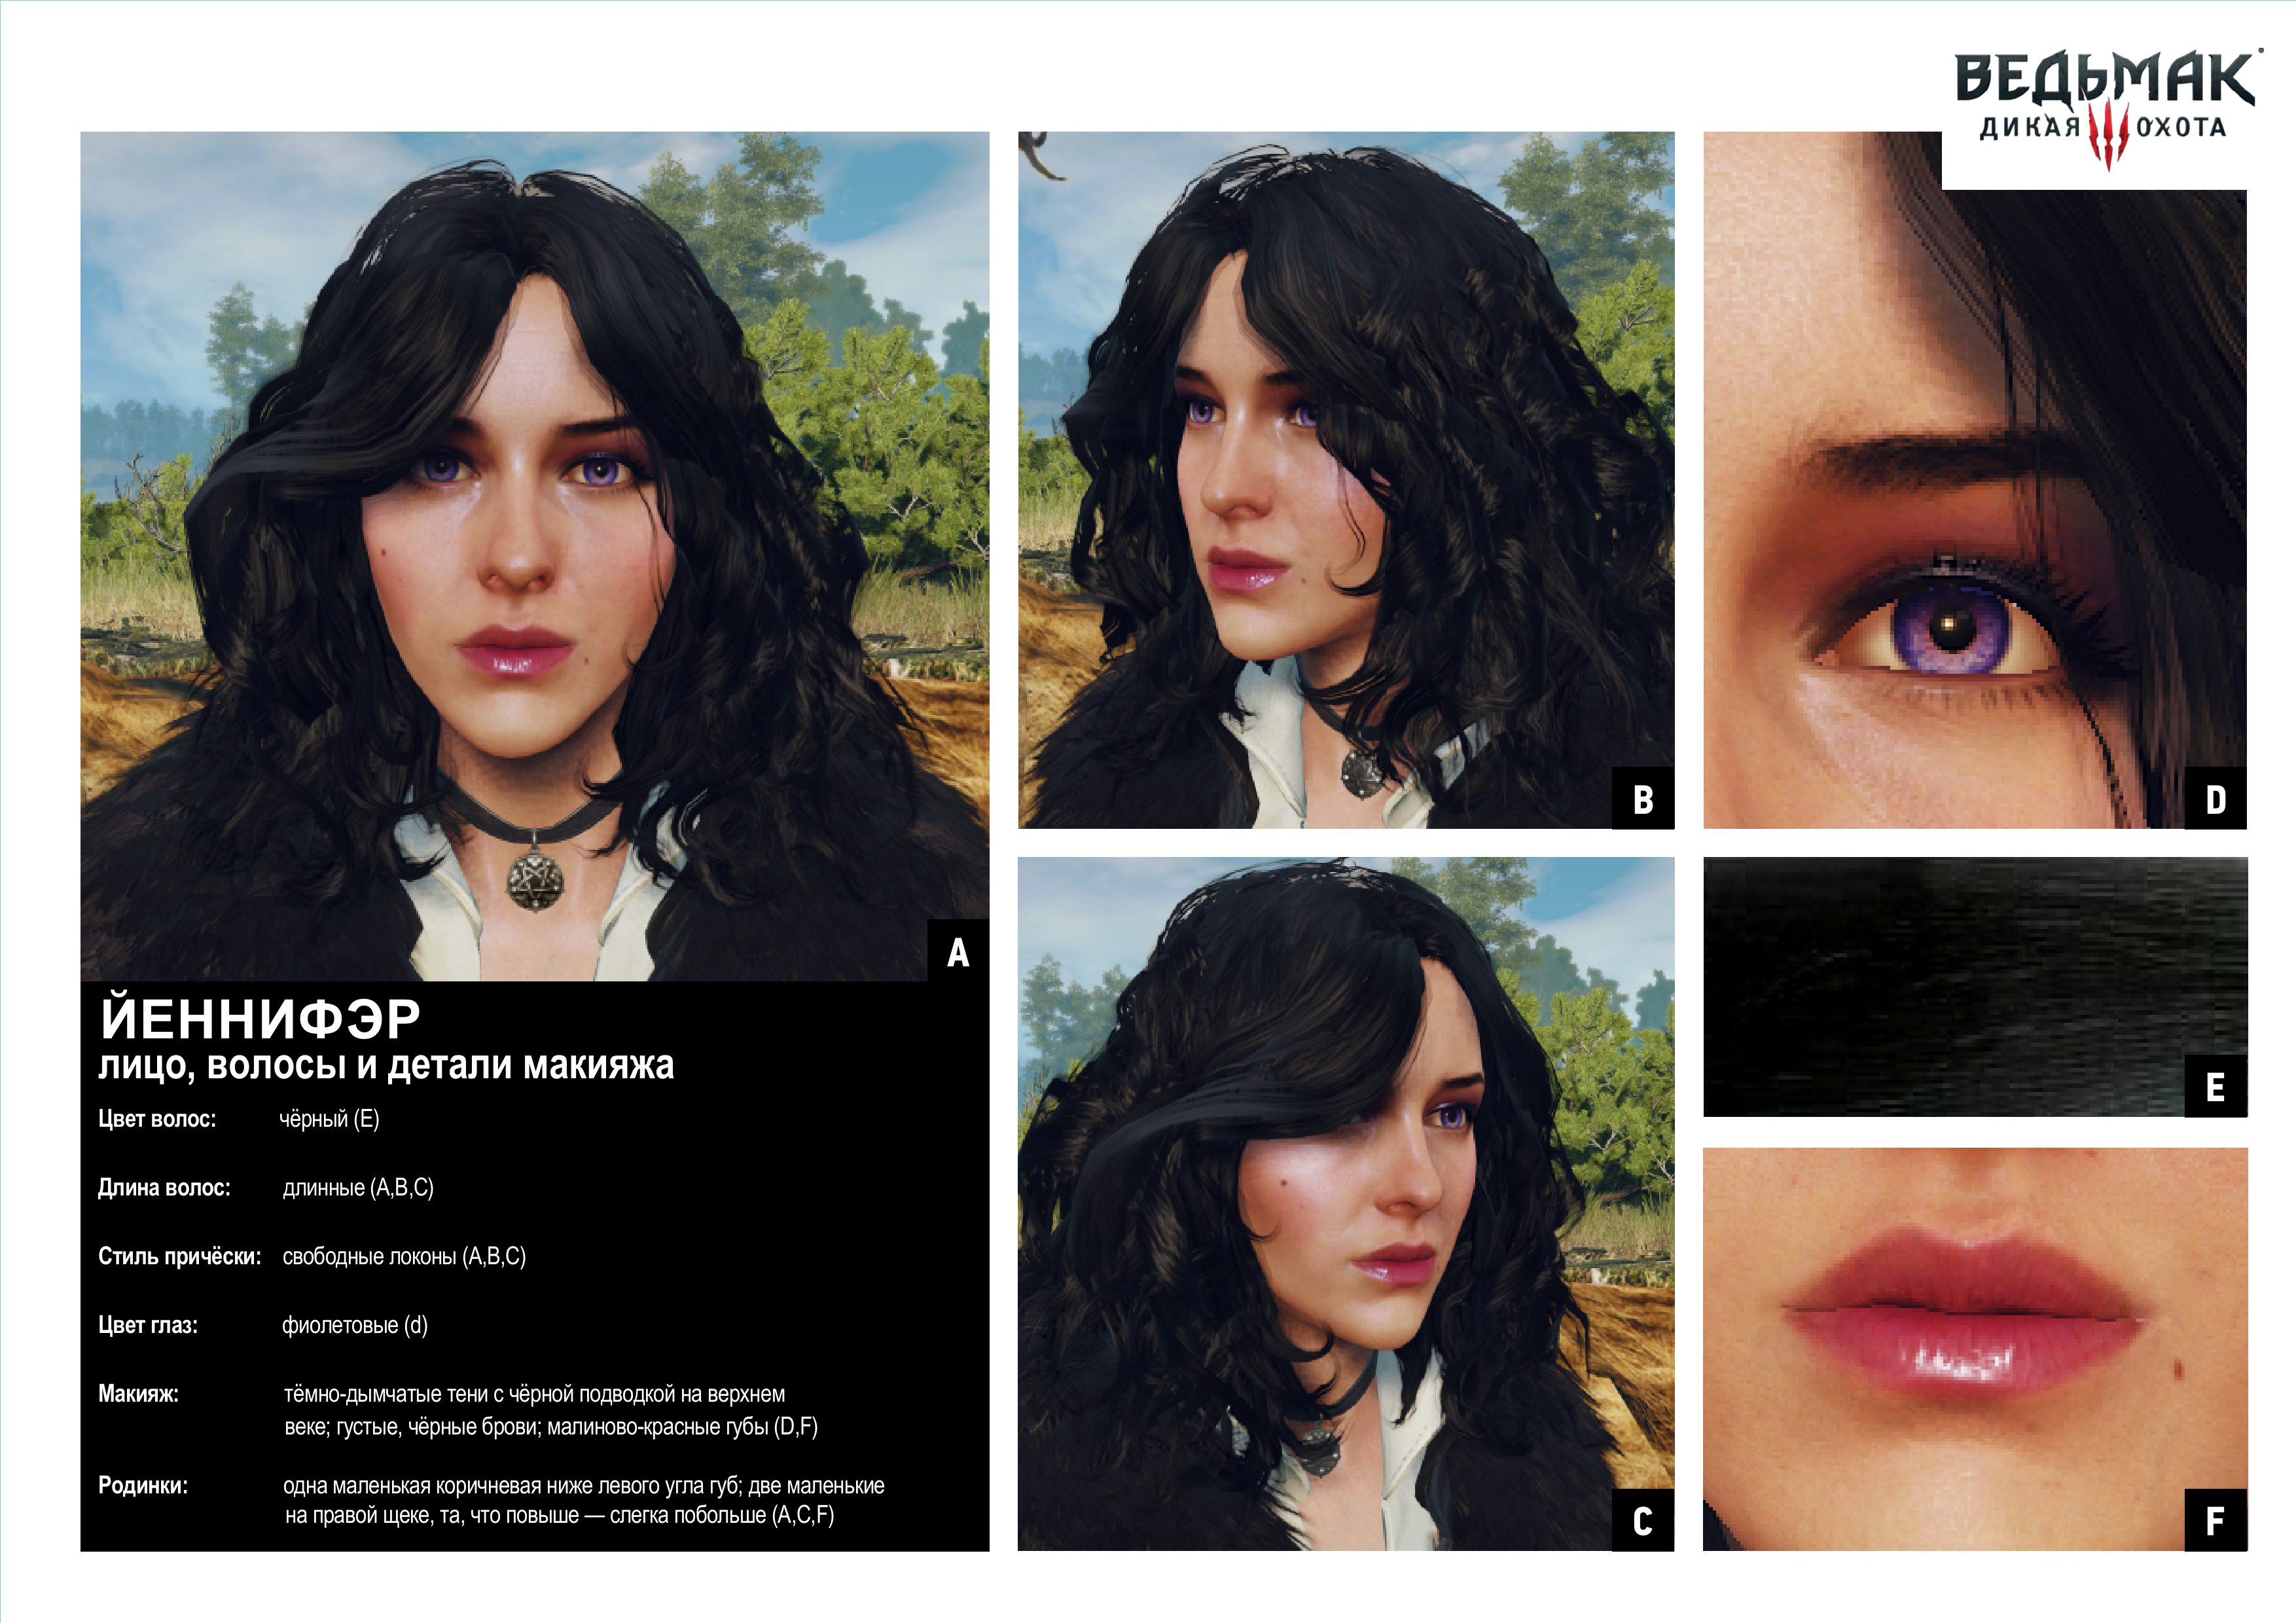 Yennefer_cosplay_guide04-00.jpg